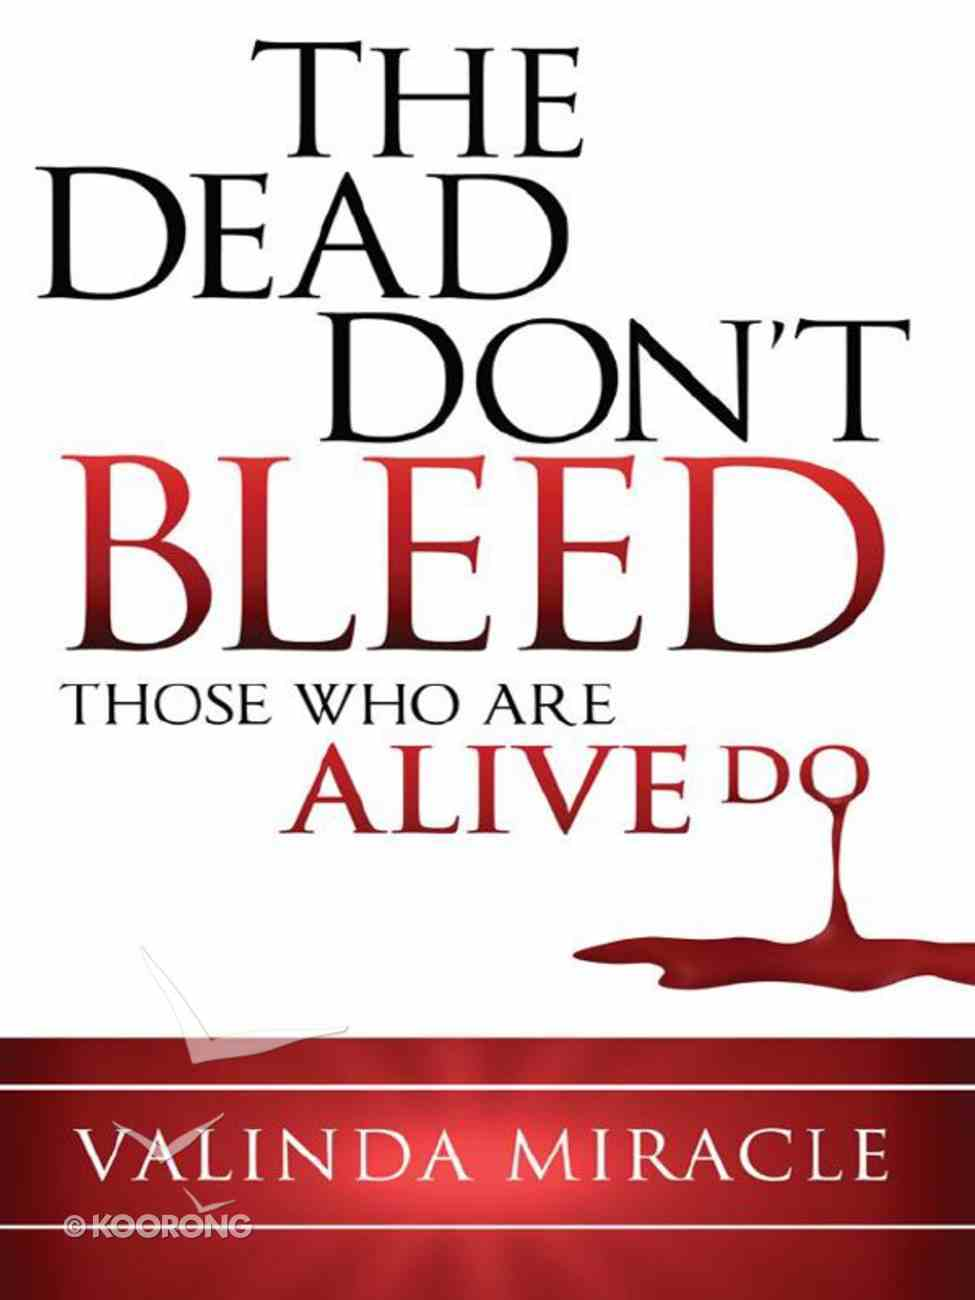 The Dead Don't Bleed: Those Who Are Alive Do eBook